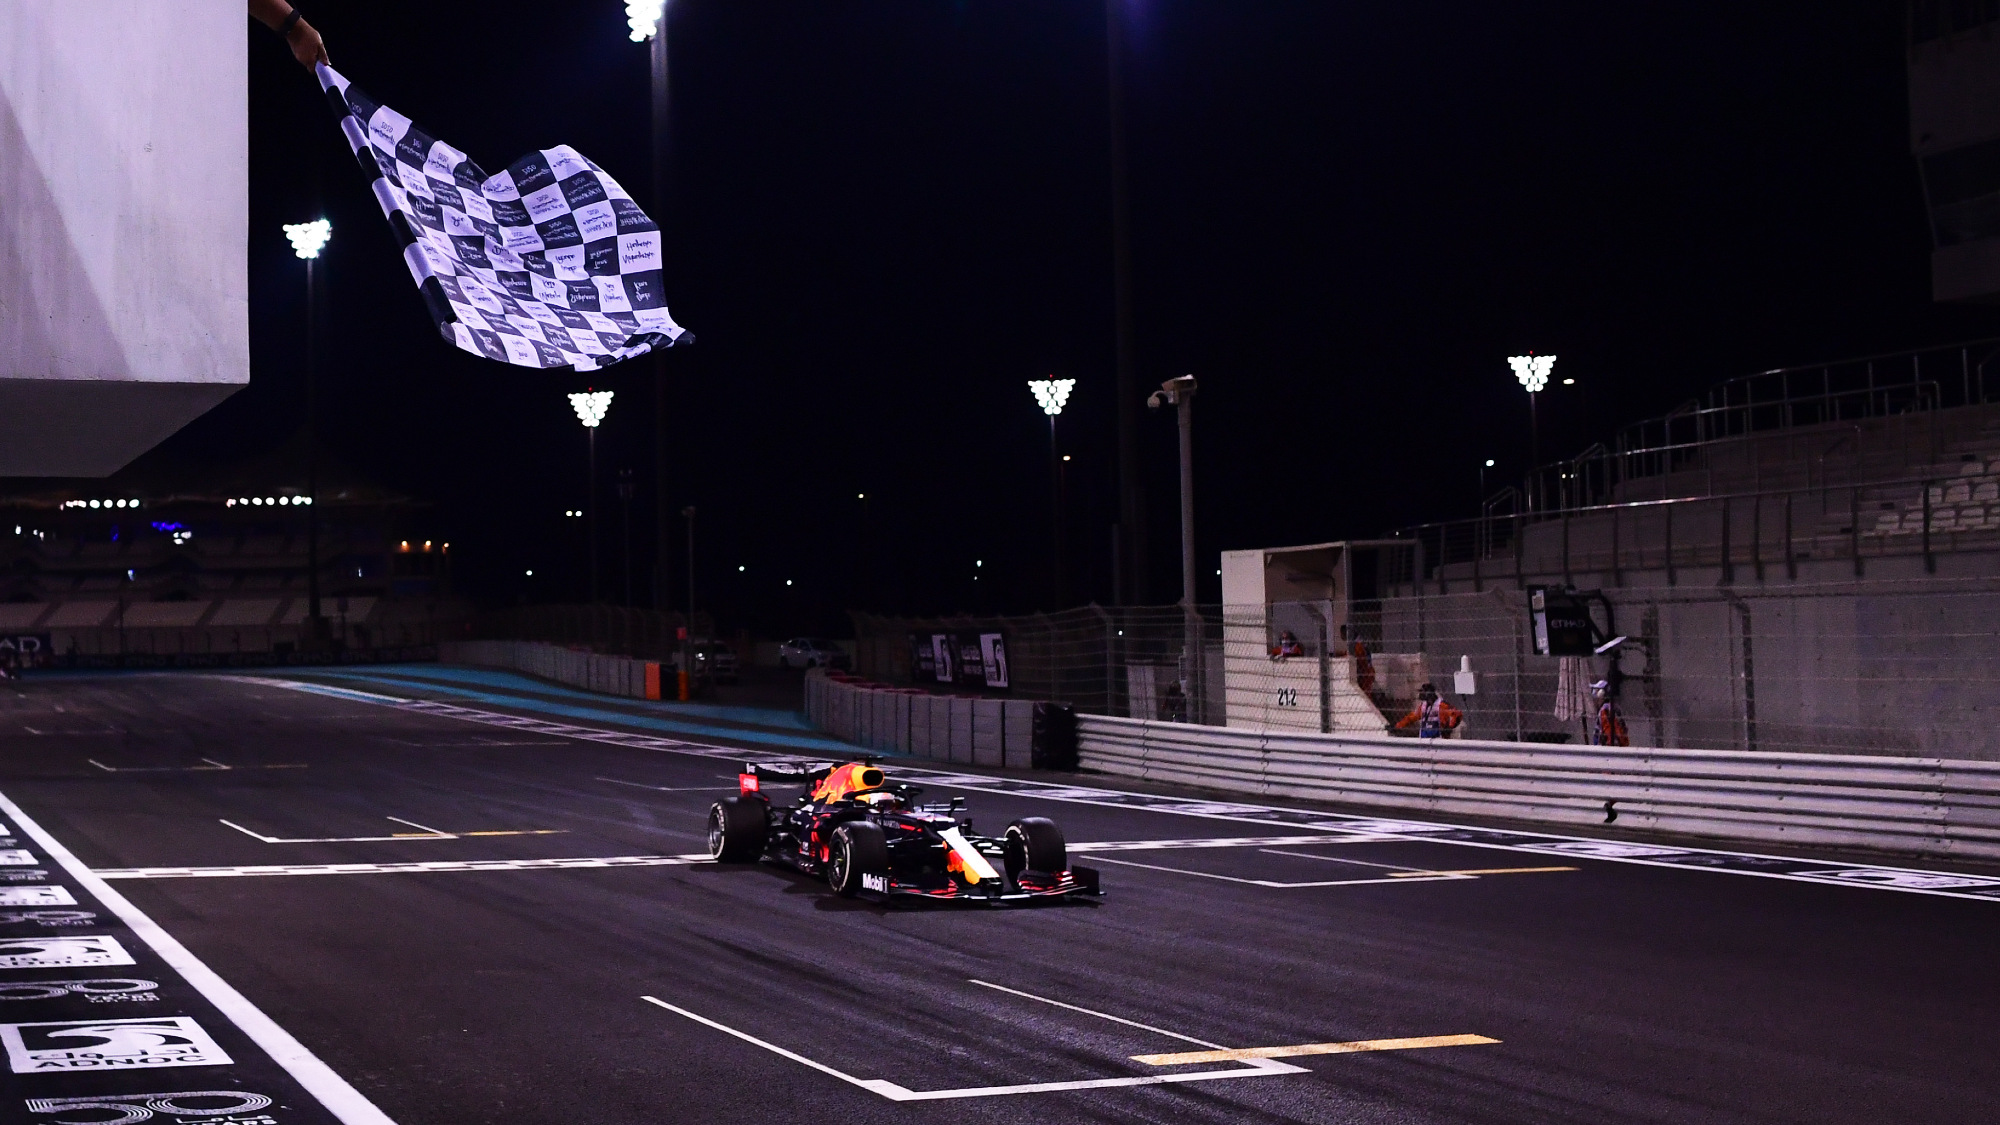 Alonso on track & Vettel's goodbye: what you missed from the Abu Dhabi GP